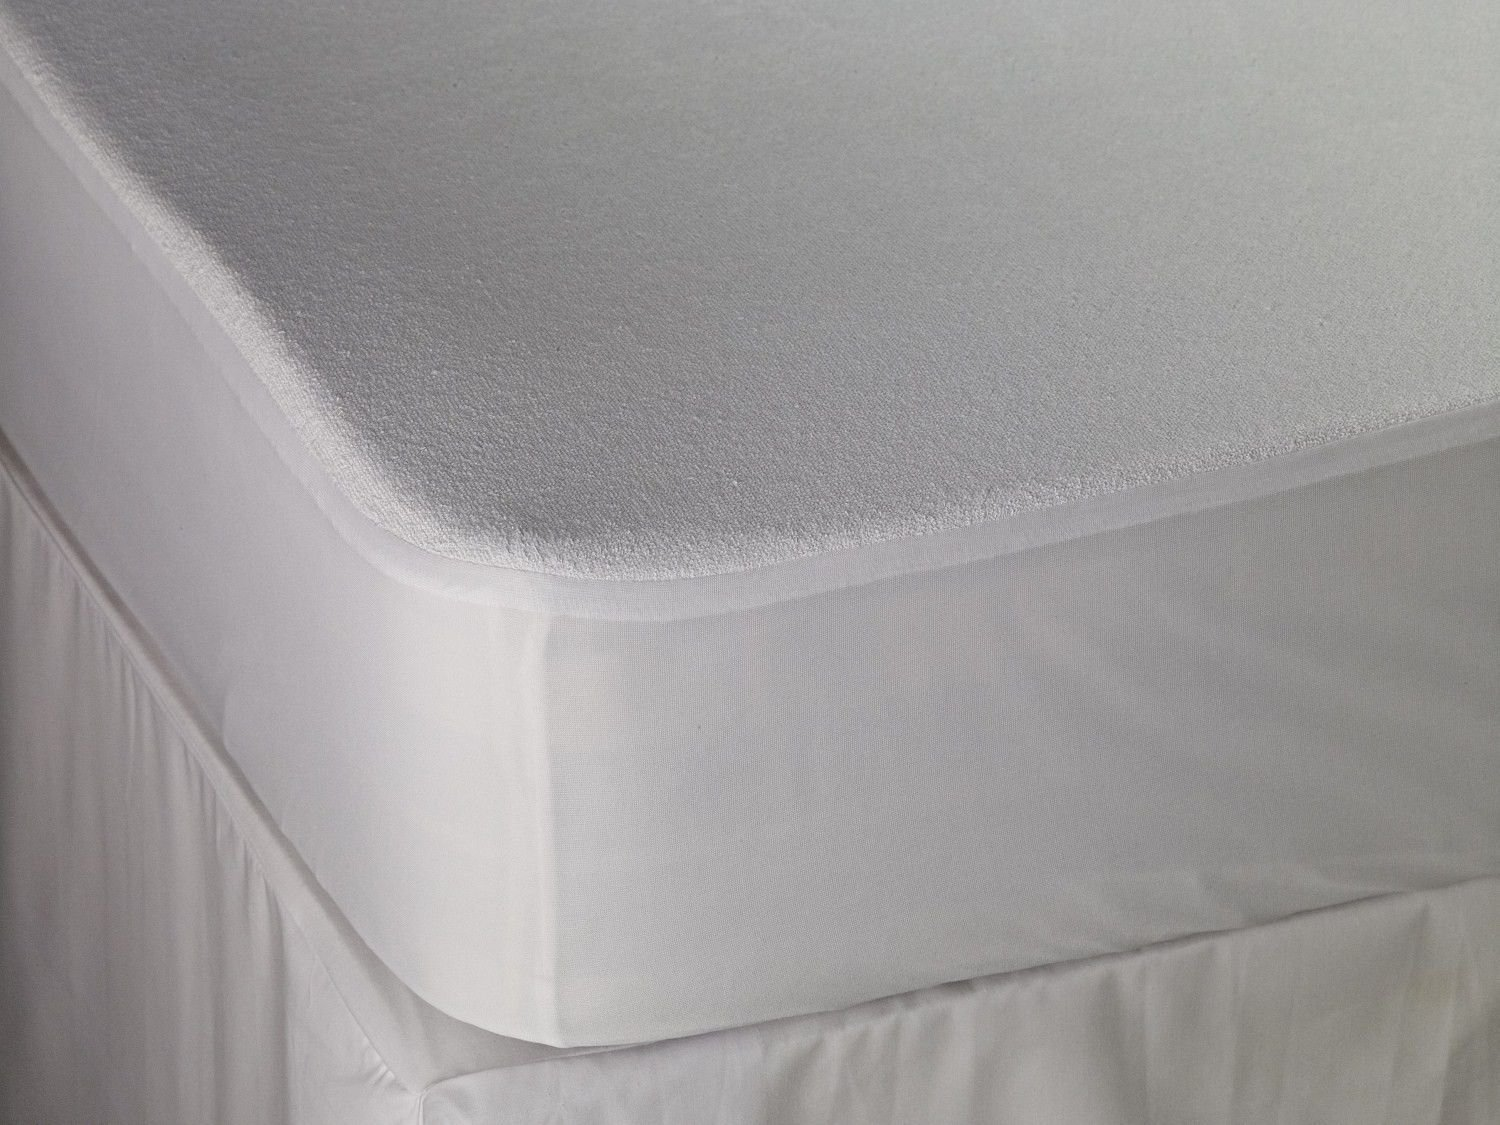 Comfy Nights 30cm Deep Terry Towel Waterproof Fitted NON NOISY Sheet Mattress Protector - King Haani